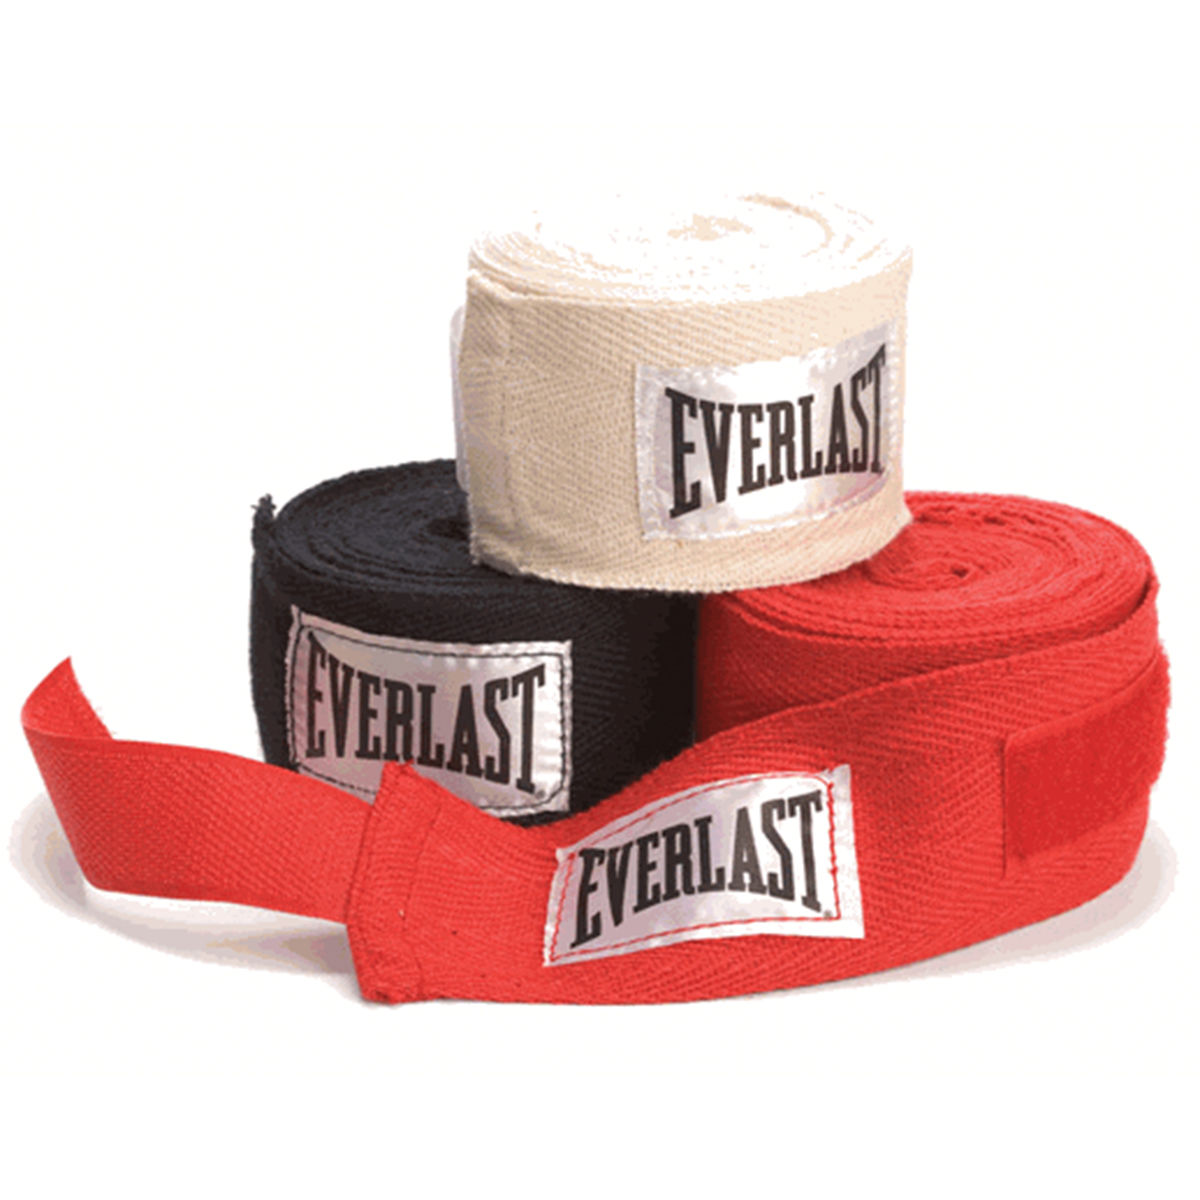 Everlast 3 Pack 108 Inch Hand Wraps